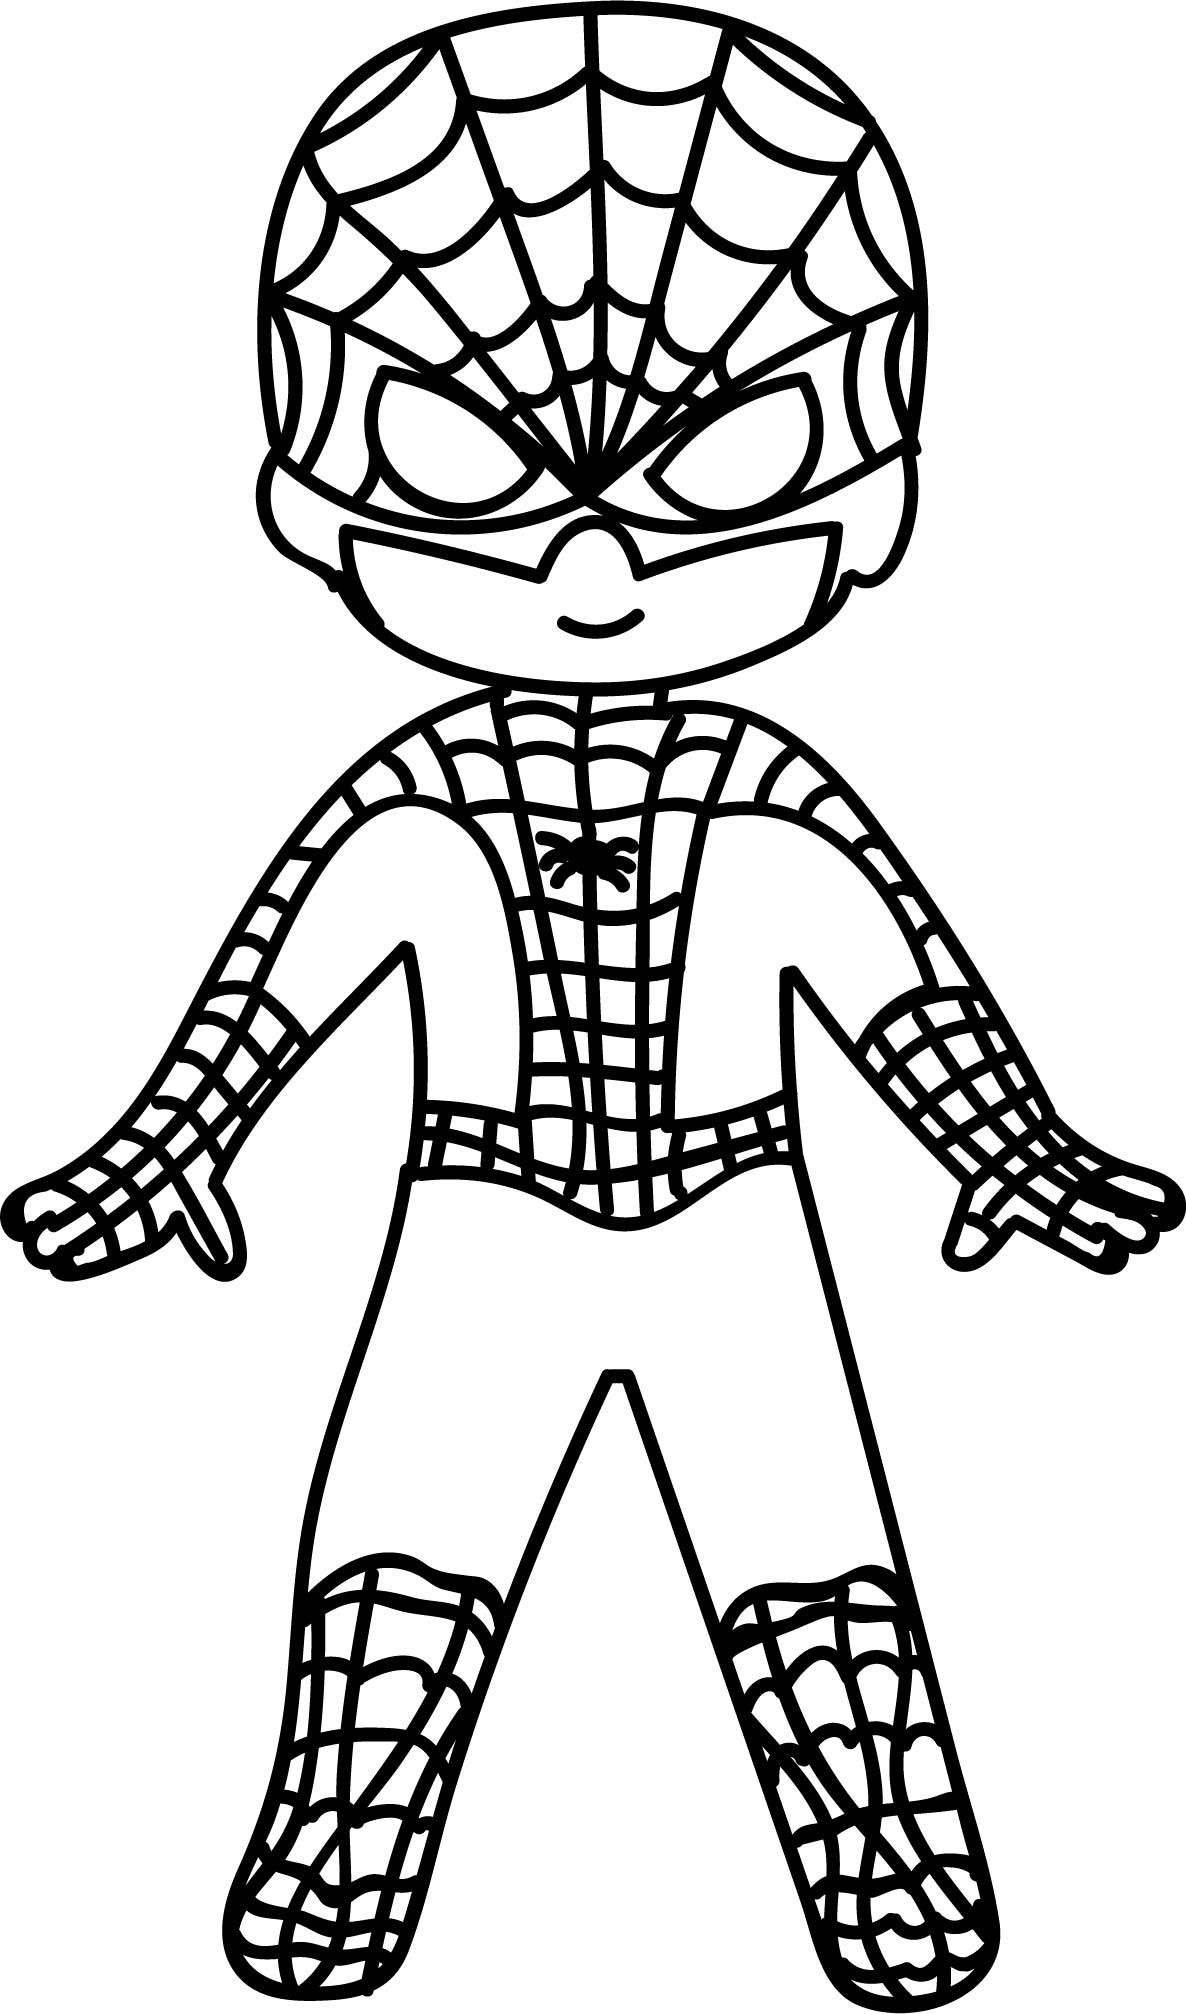 kids coloring pages spiderman | cool Waiting Cartoon Superhero Spiderman Kid Coloring Page ...